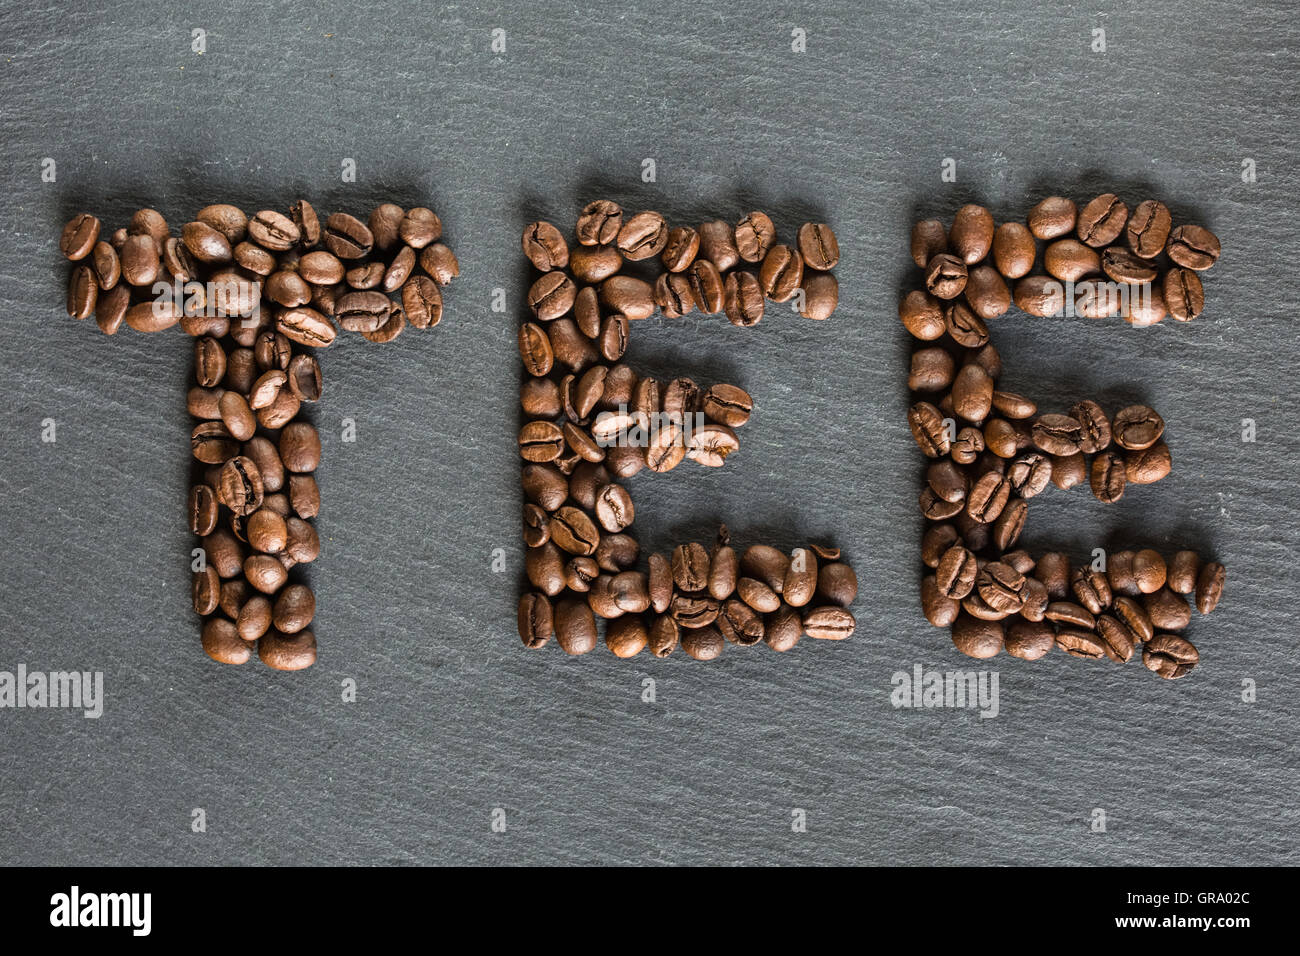 The Word Tea Written From Coffee Beans - Stock Image